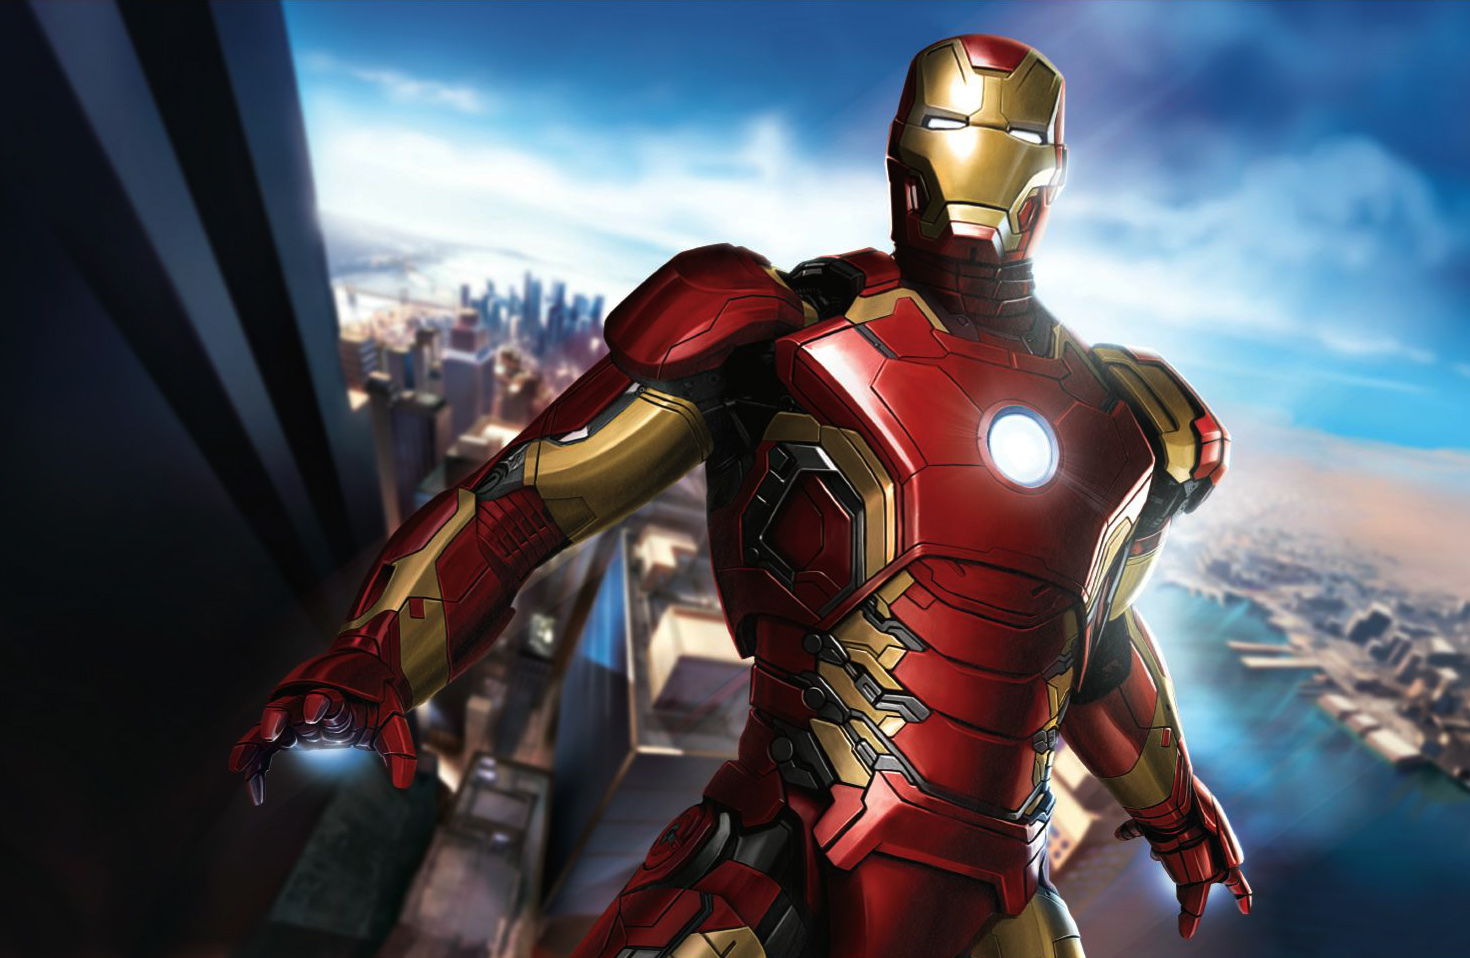 New Avengers Age Of Ultron Concept Art Shows The Vision